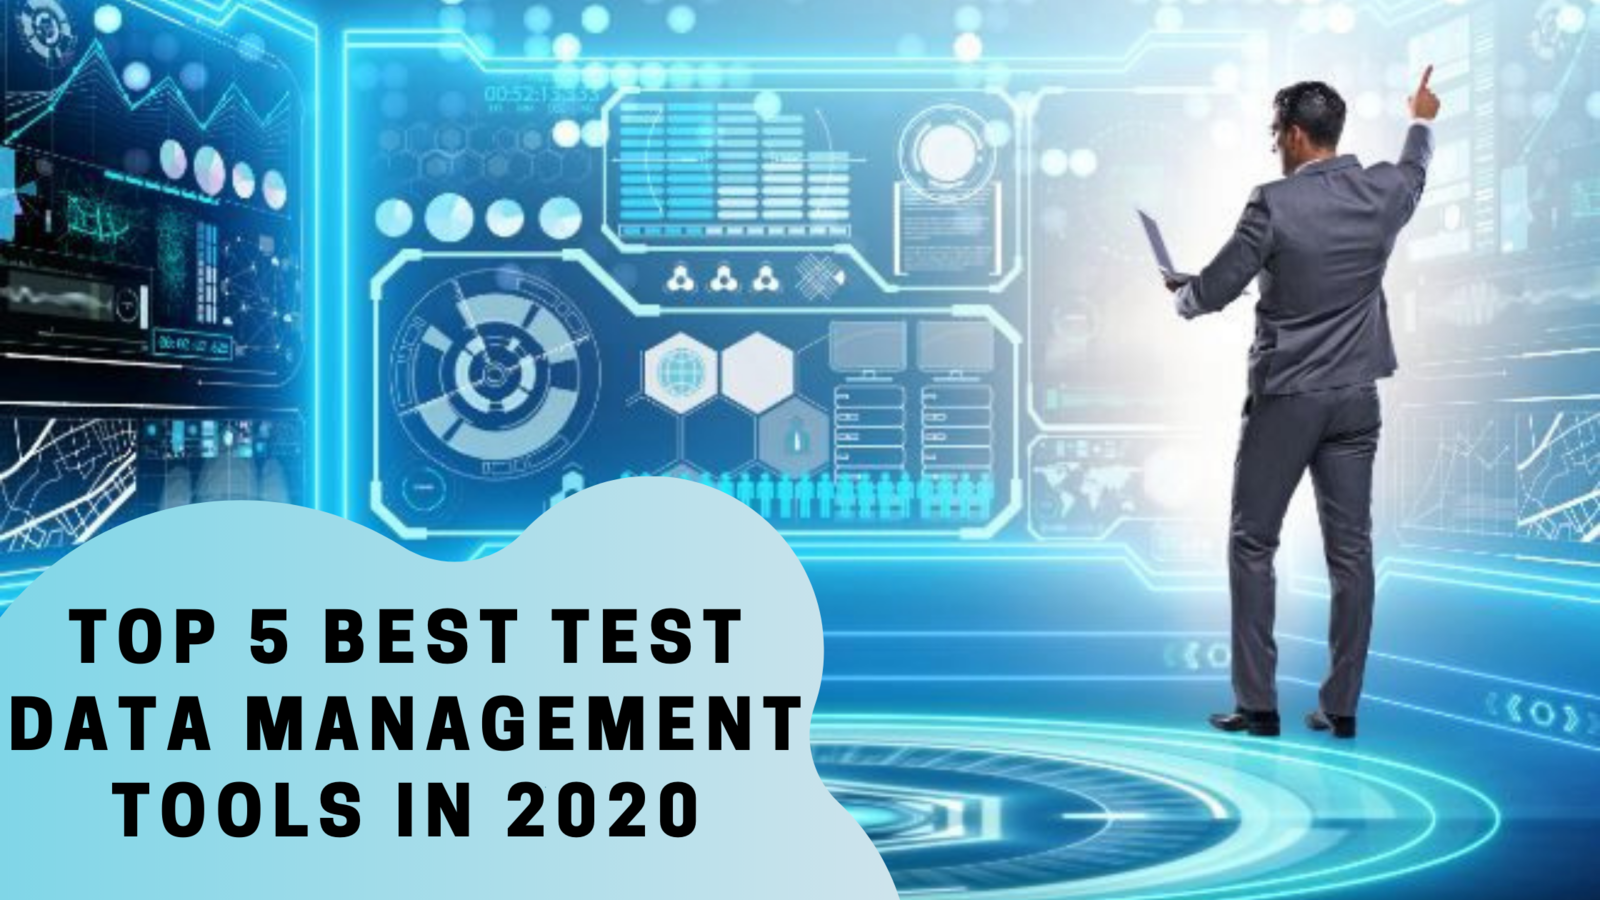 Top 5 BEST Test Data Management Tools In 2020